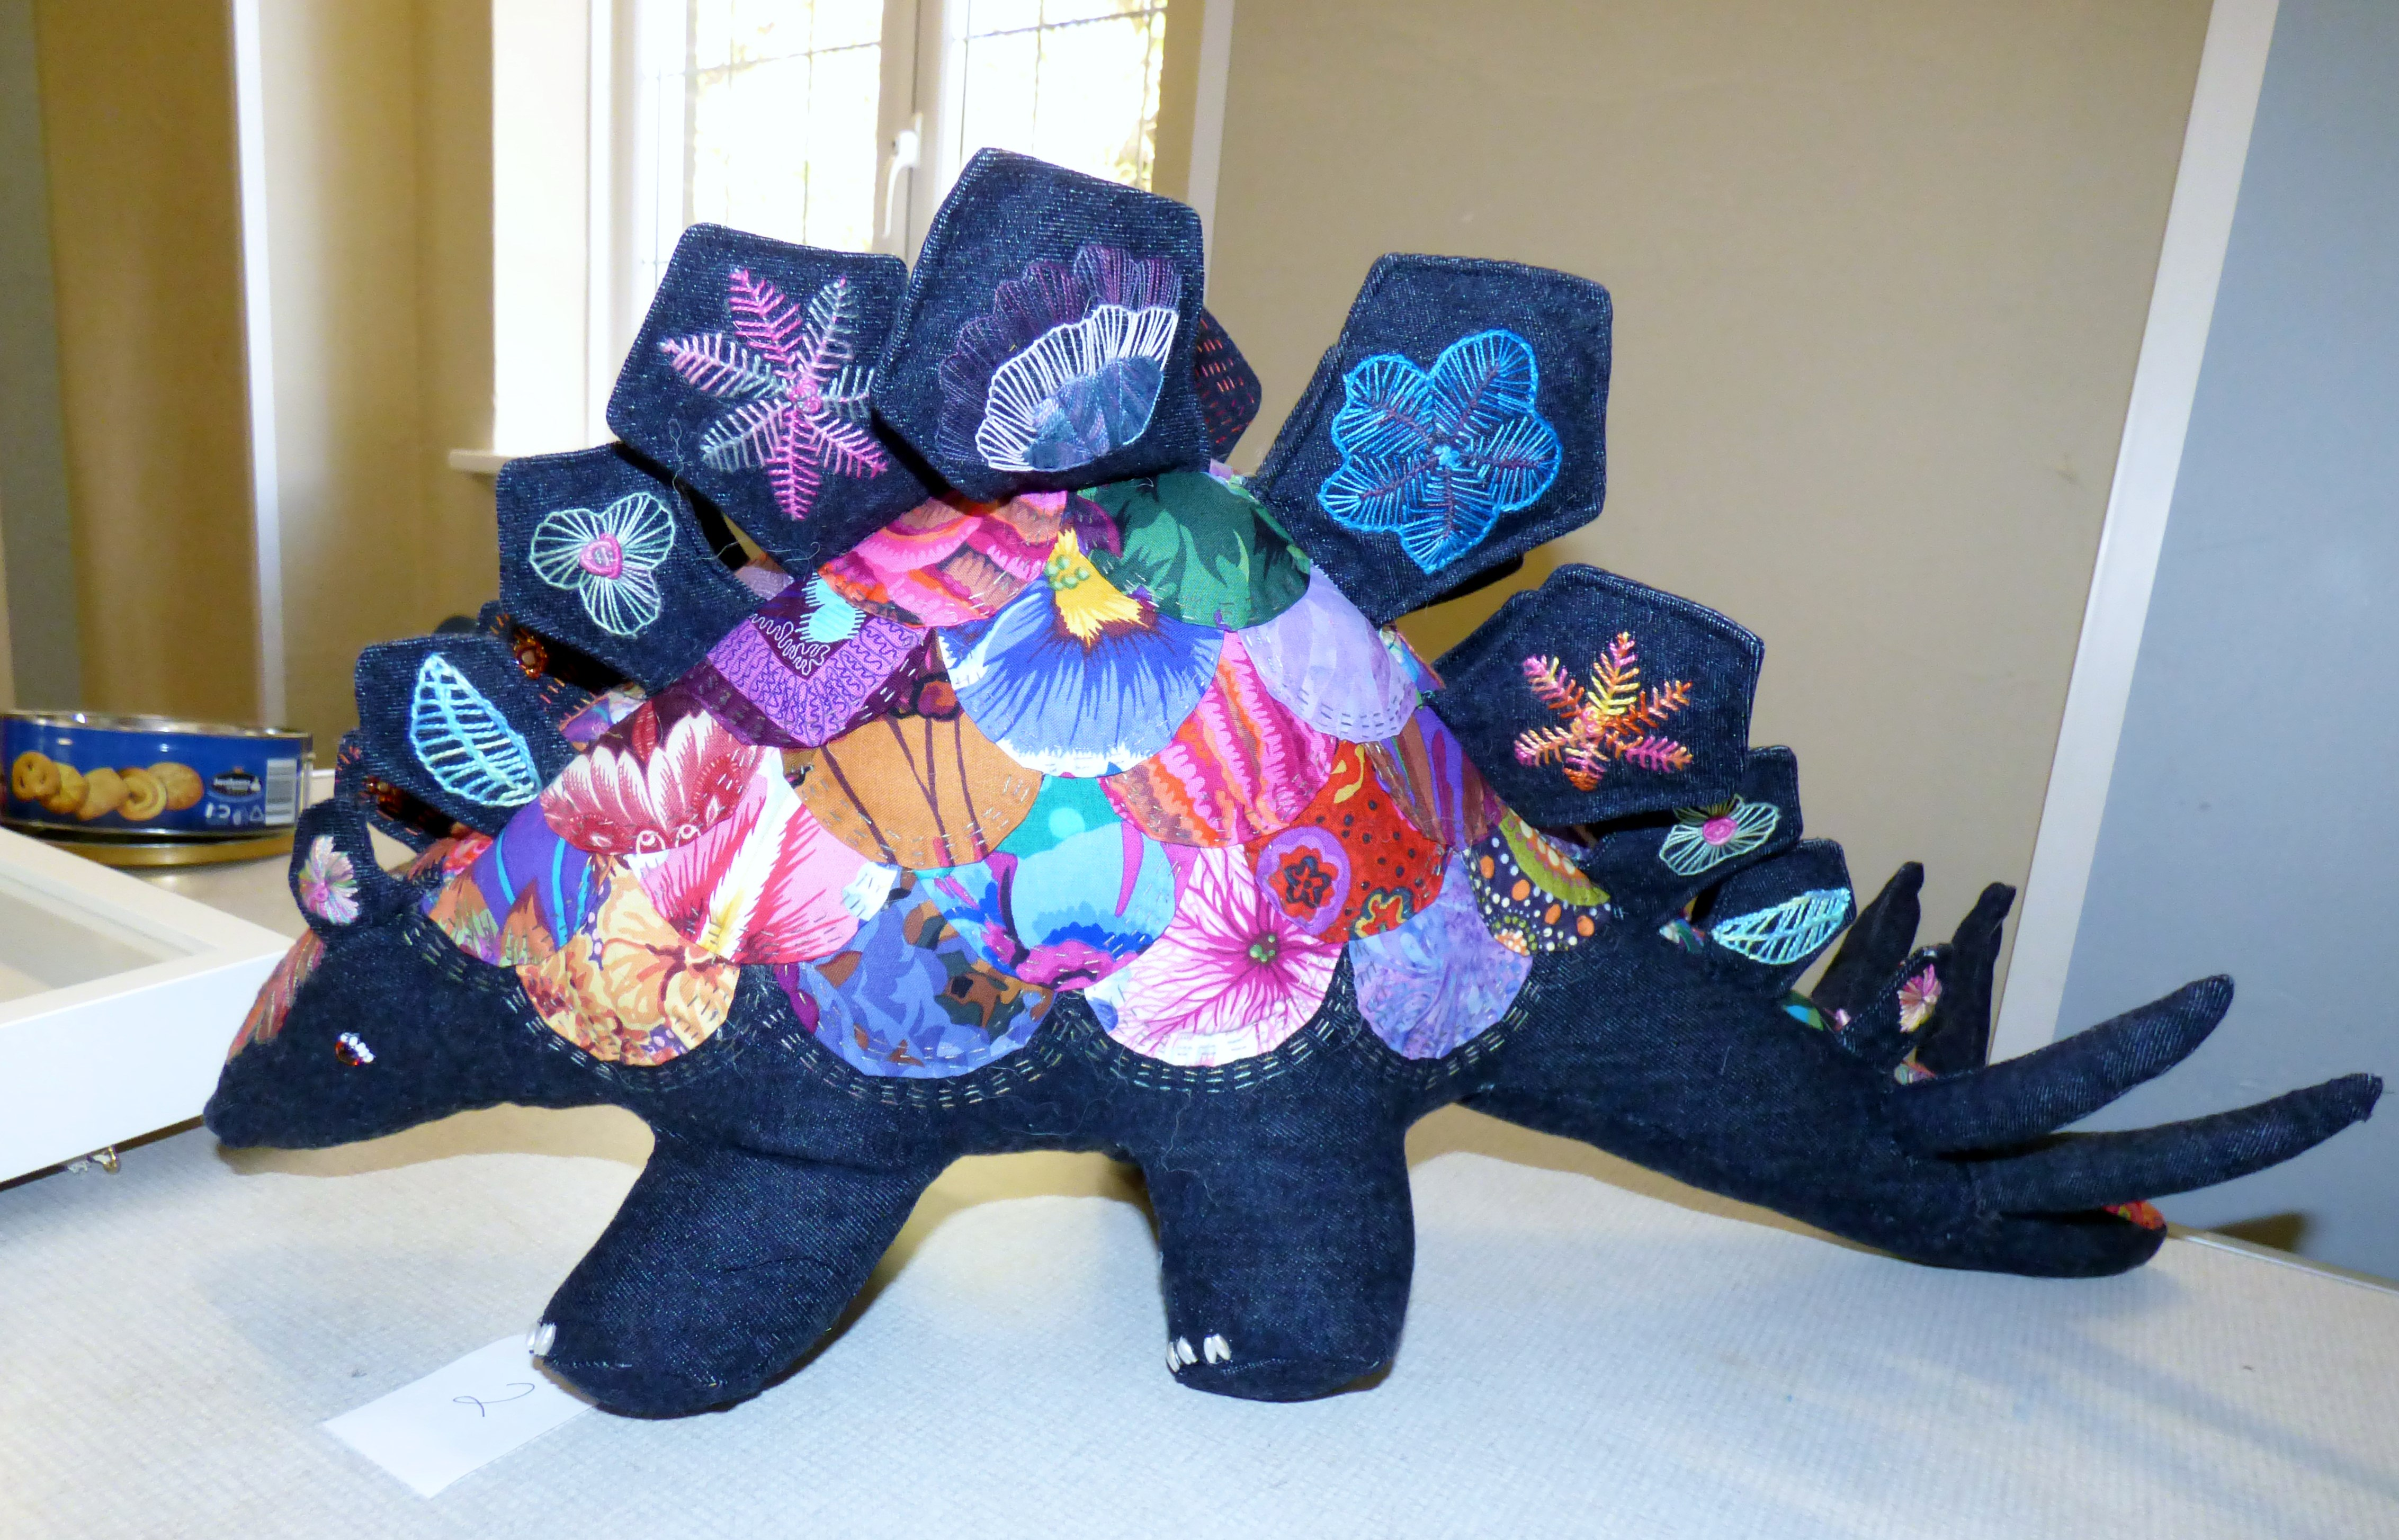 winning entry entry to Chair's Challenge competition 2018. STEGOSAURUS by Gill Roberts